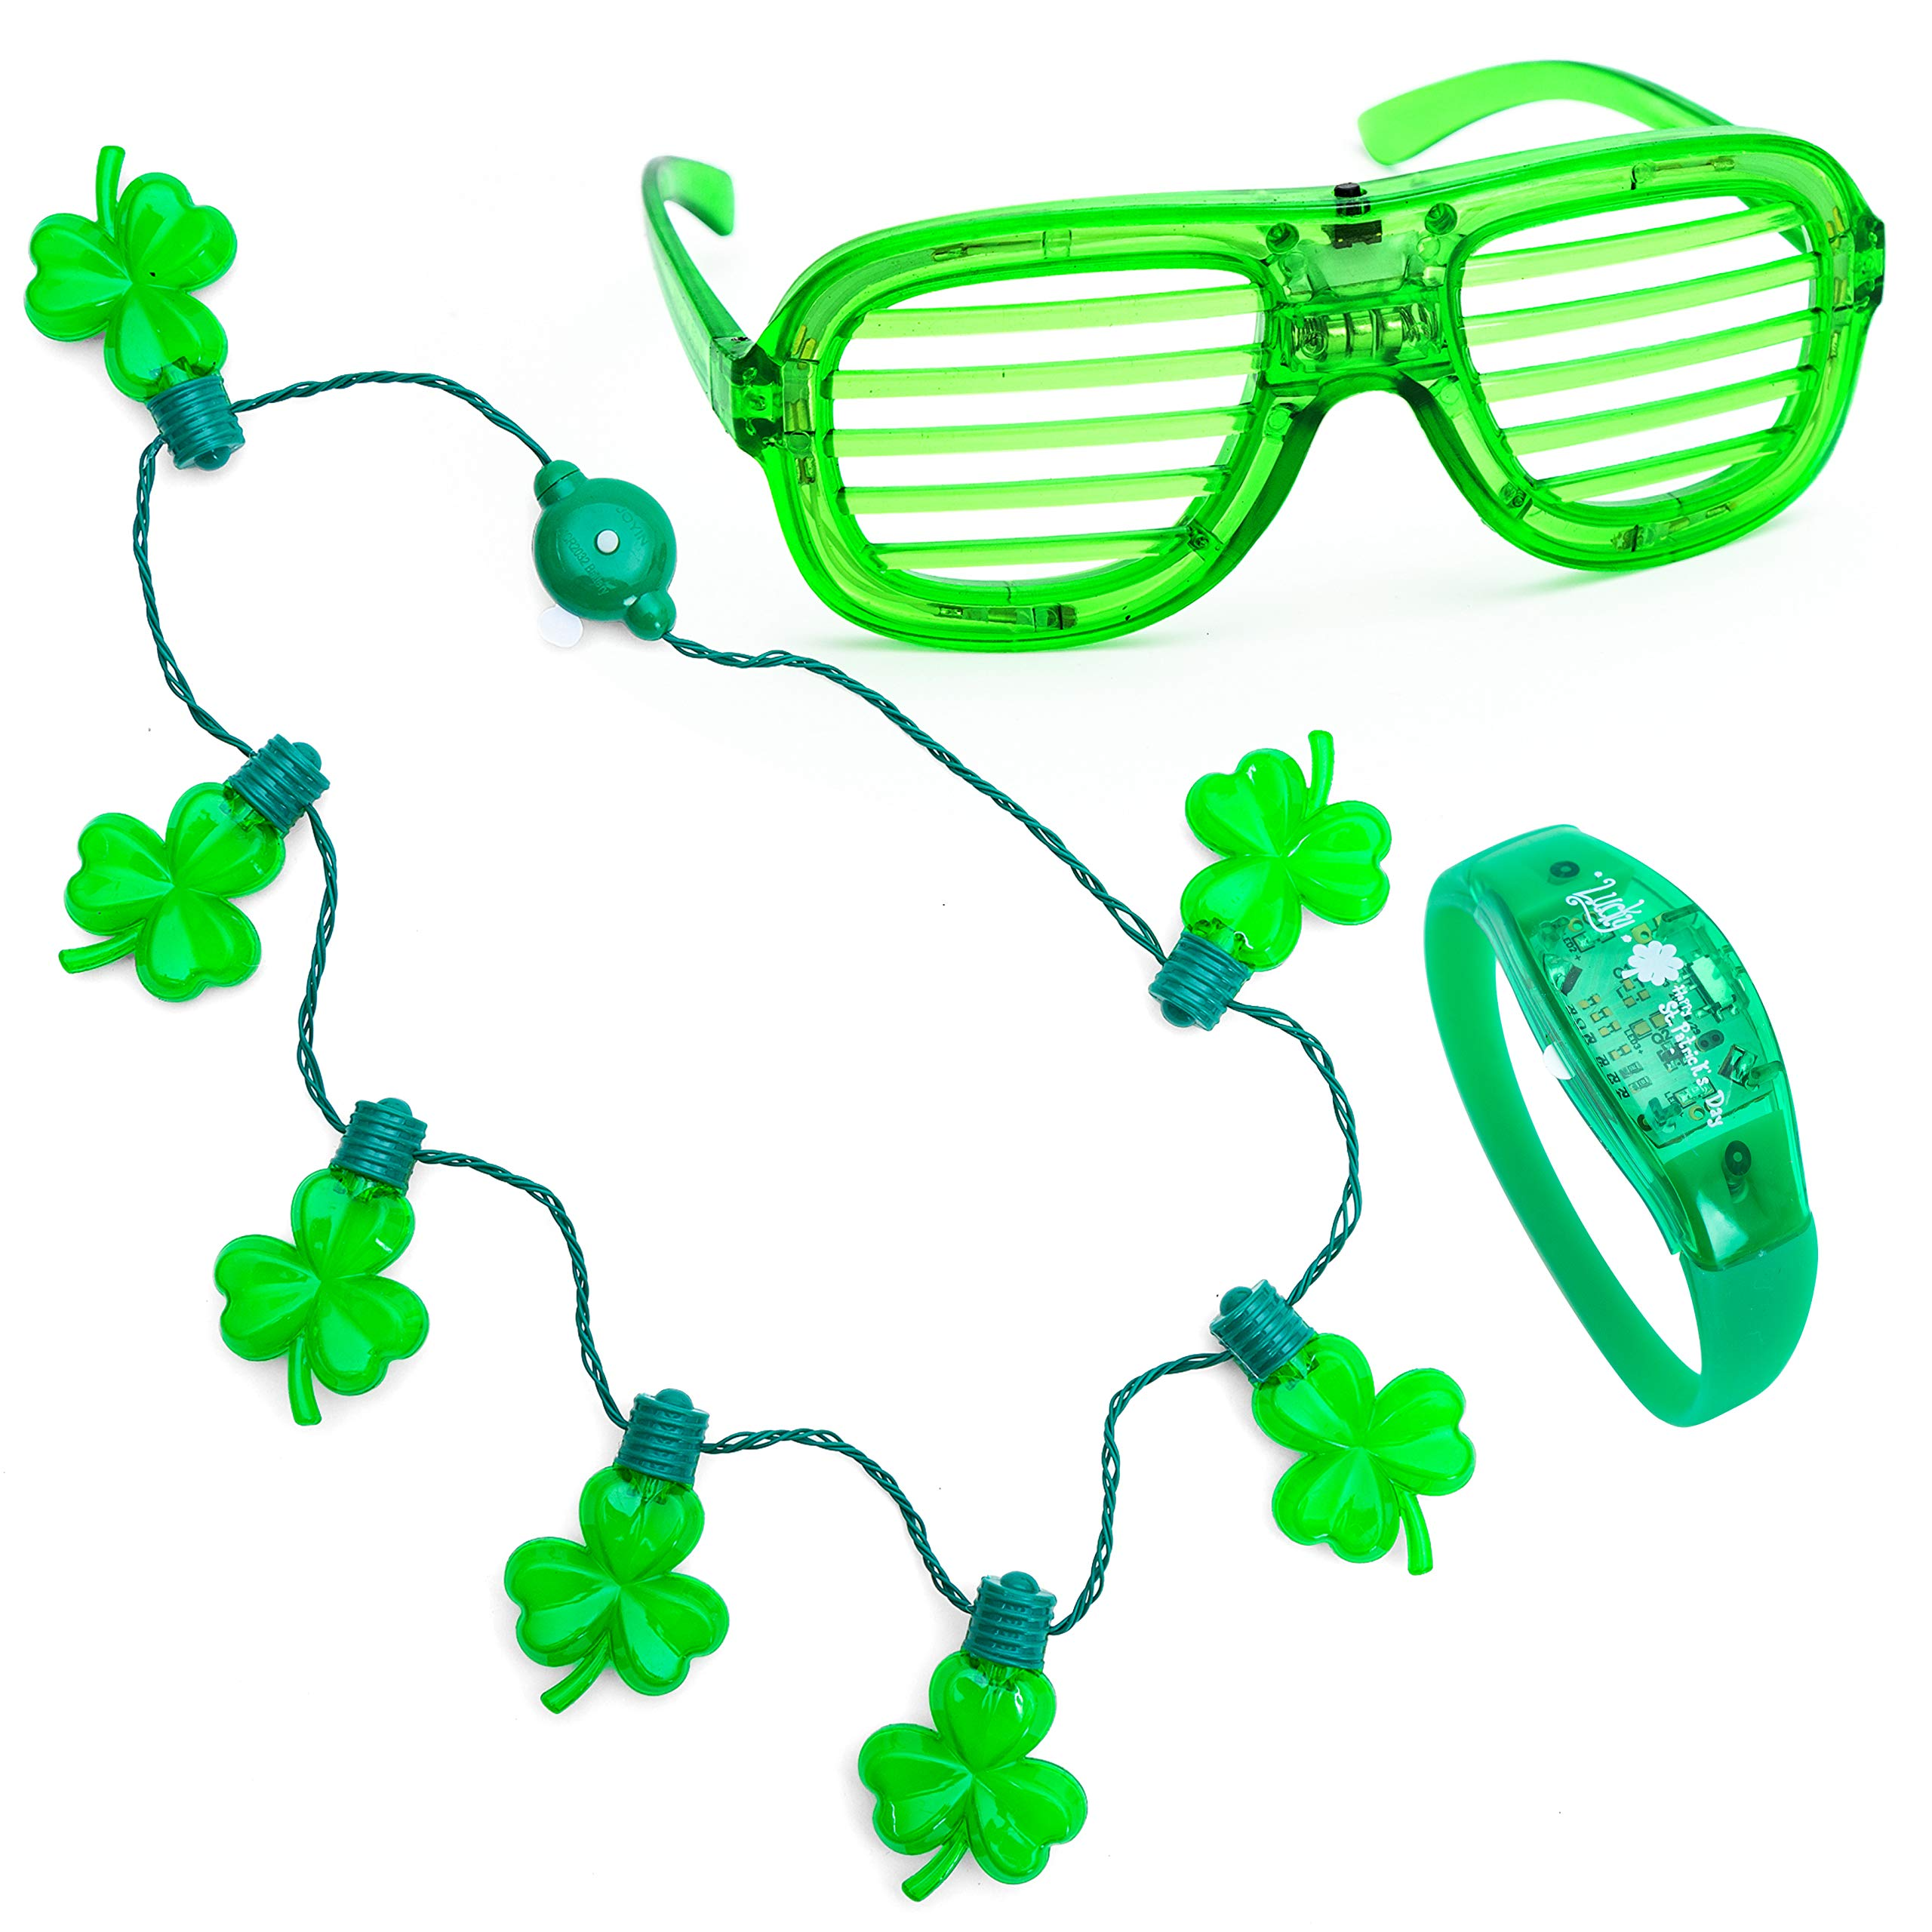 JOYIN St. Patrick's Day LED Light Up Shamrock Necklace Glow in the Dark St Patricks Bracelet Light-up Glasses Saint Patricks Day Party Accessories